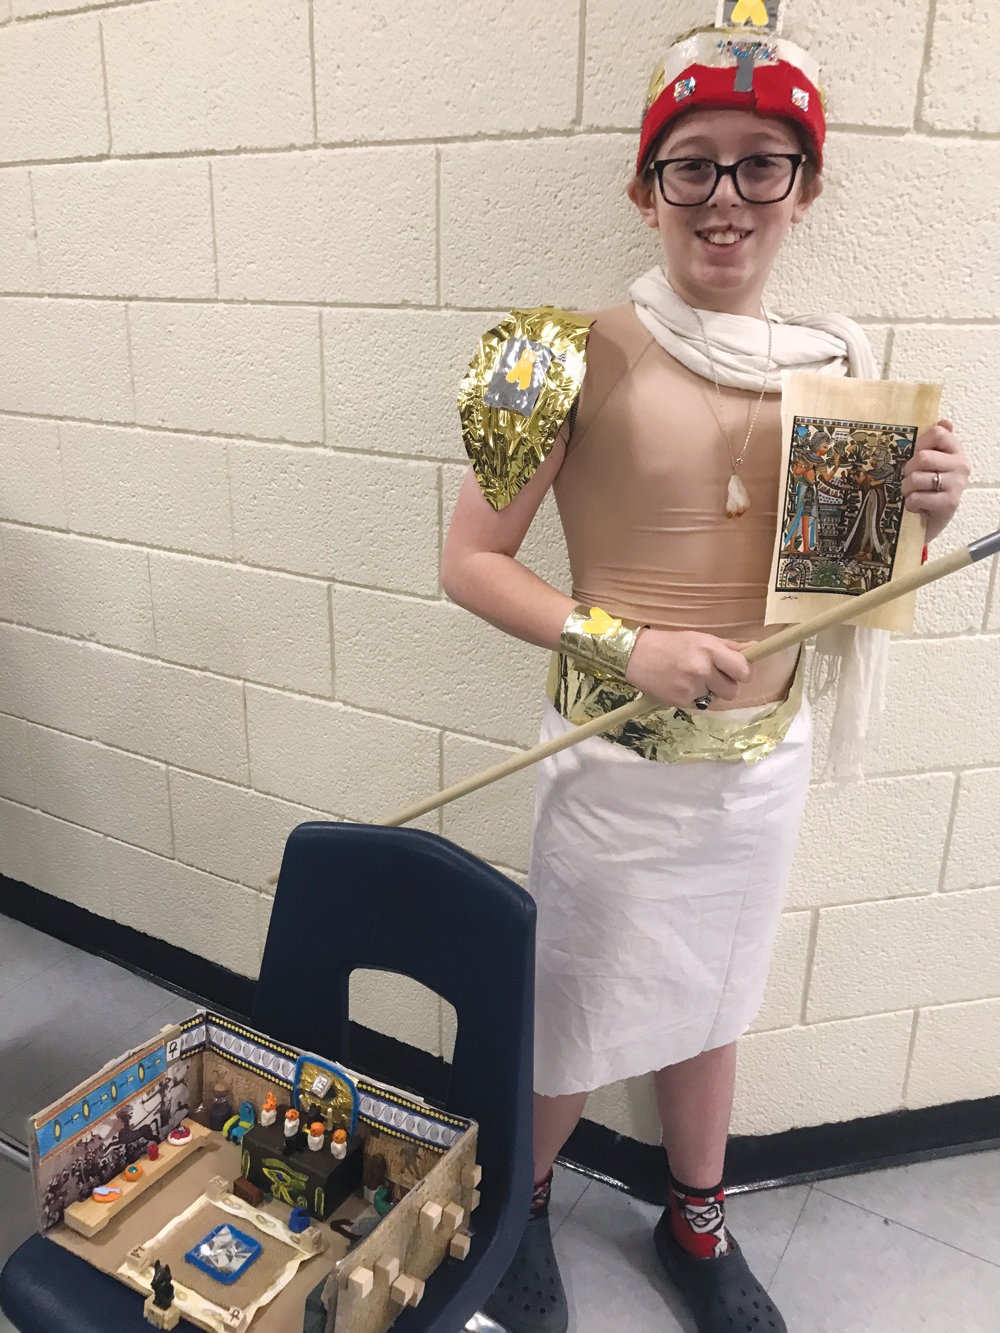 Landon Friedman is holding an Egyptian papyrus from the British Museum (that his dad had gotten for him from a previous trip to London) and his spear as he took on the identity of an ancient Egyptian general and is dressed in costume. He also created a shoebox sarcophagus tomb for his burial chamber.